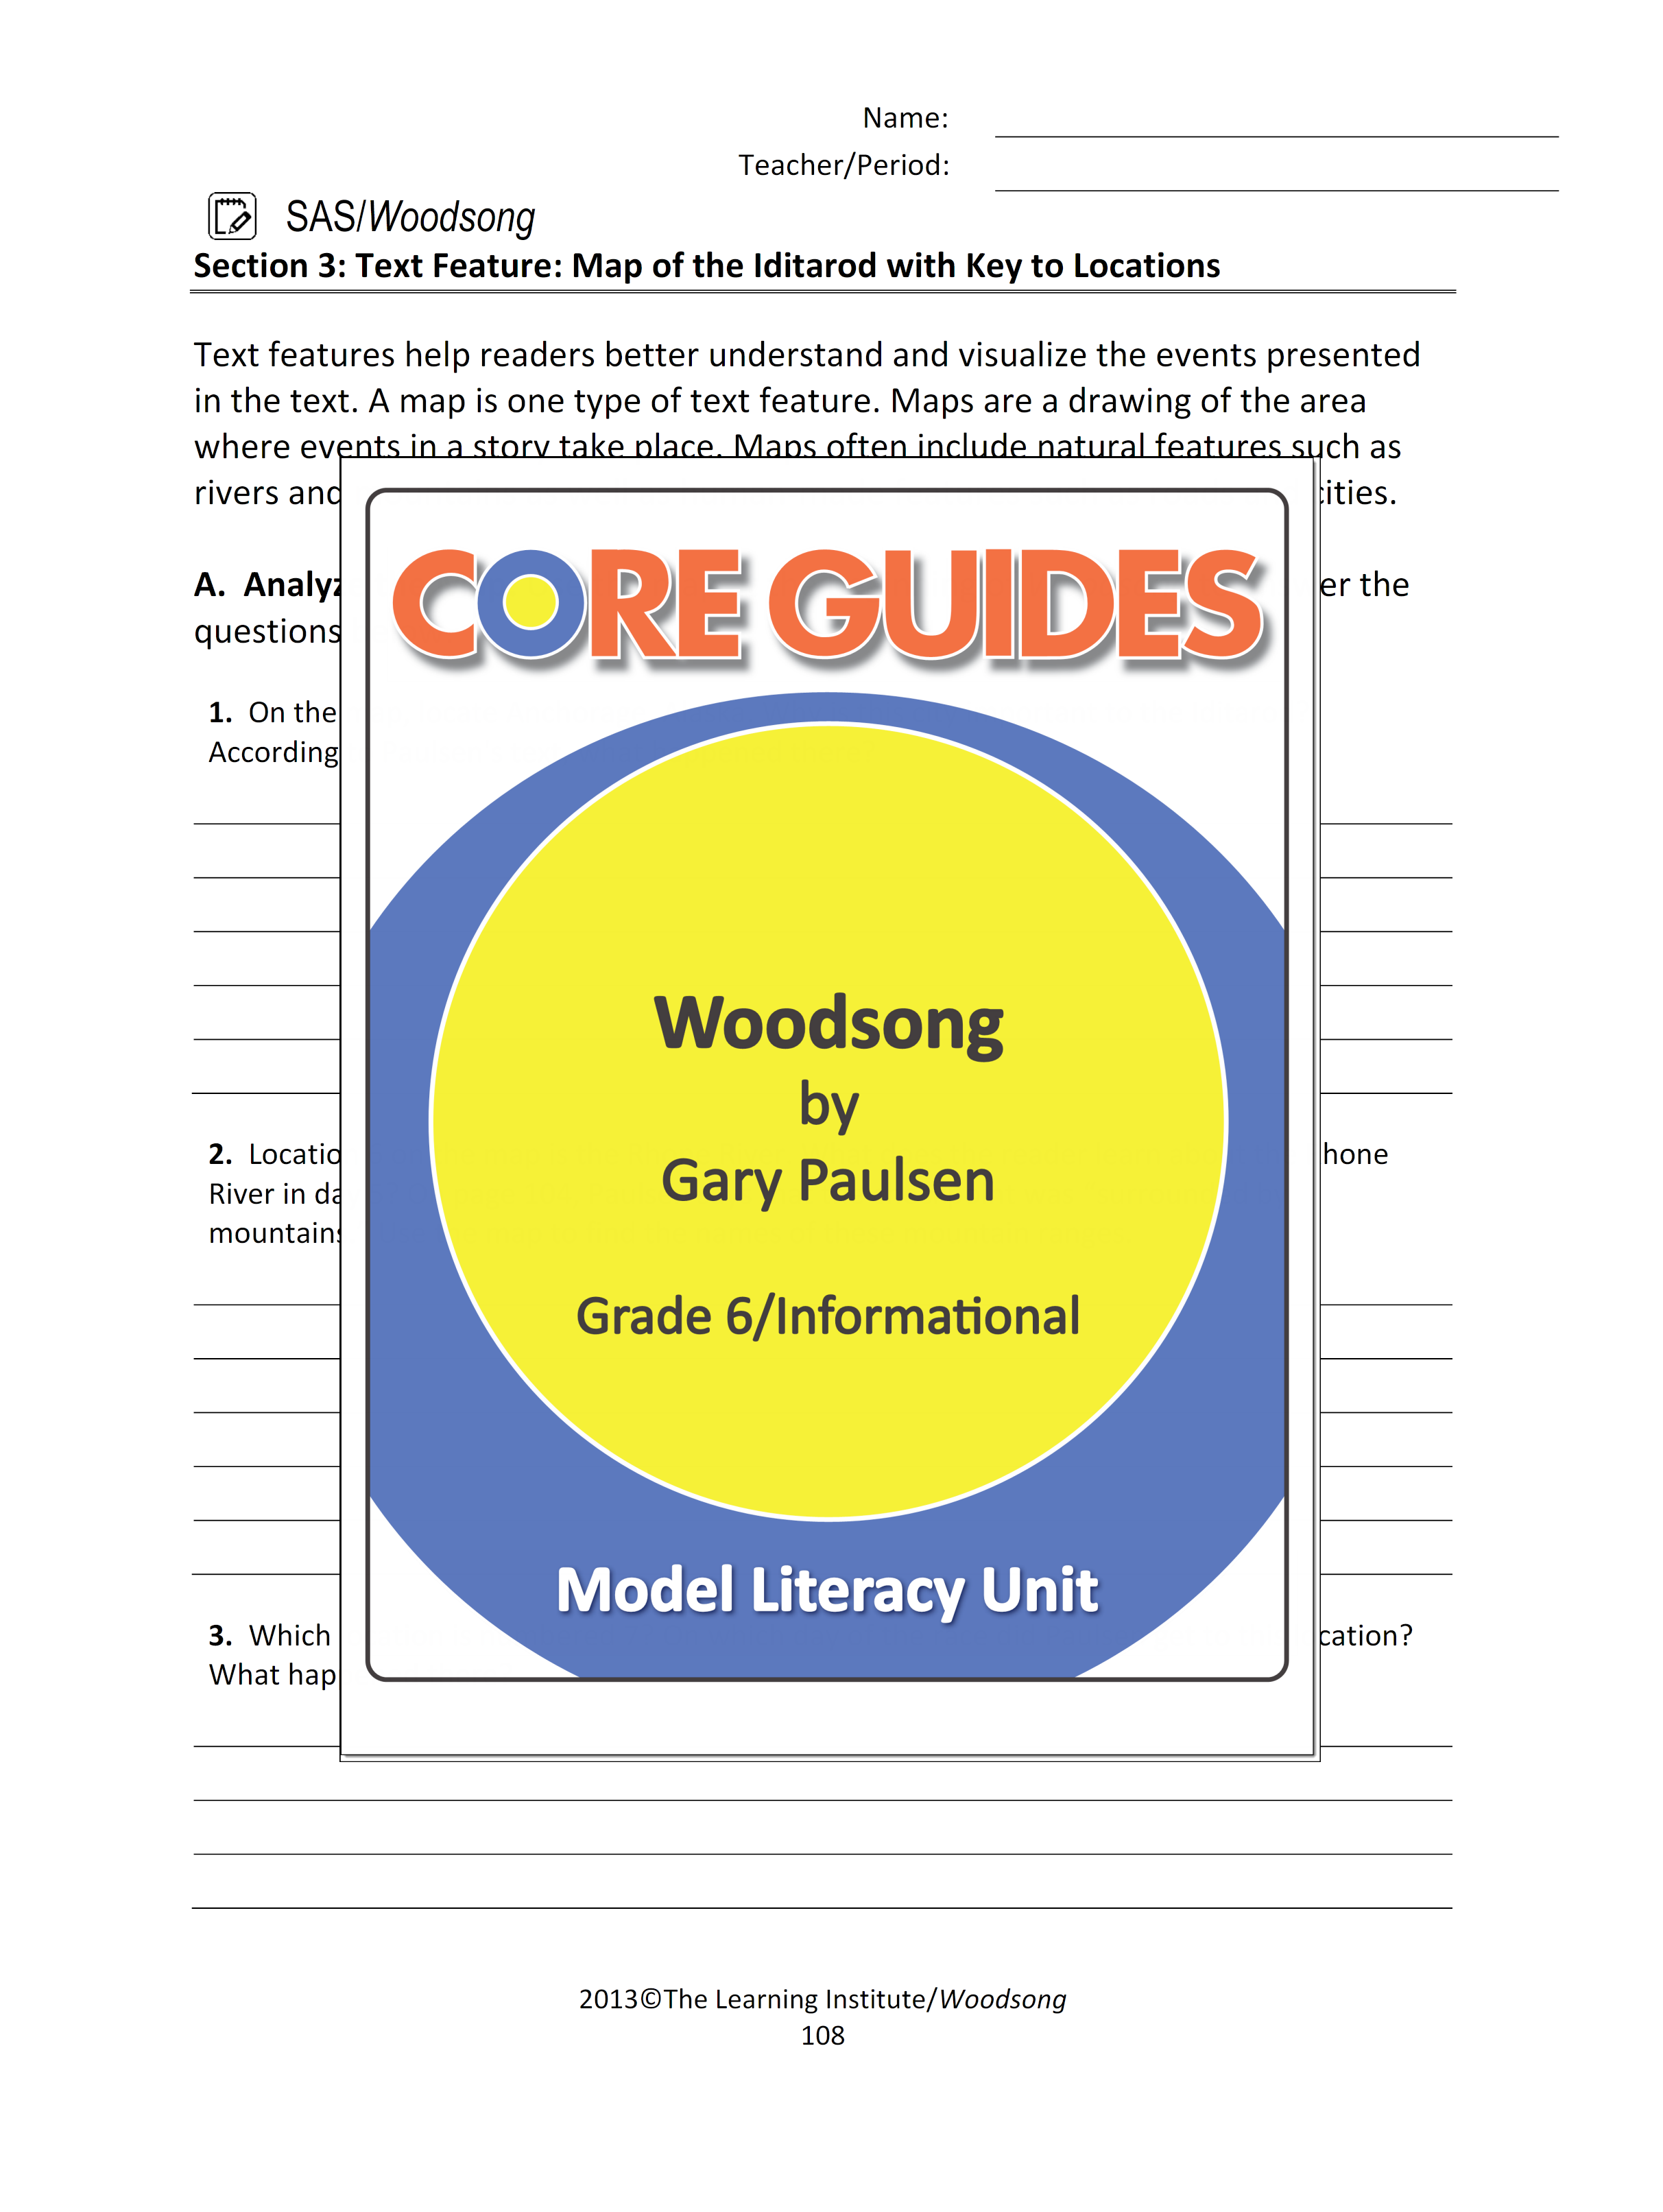 Worksheets Text Feature Worksheet enjoy this free text feature worksheet for use with the informational woodsong by gary paulsen our core guide divides into